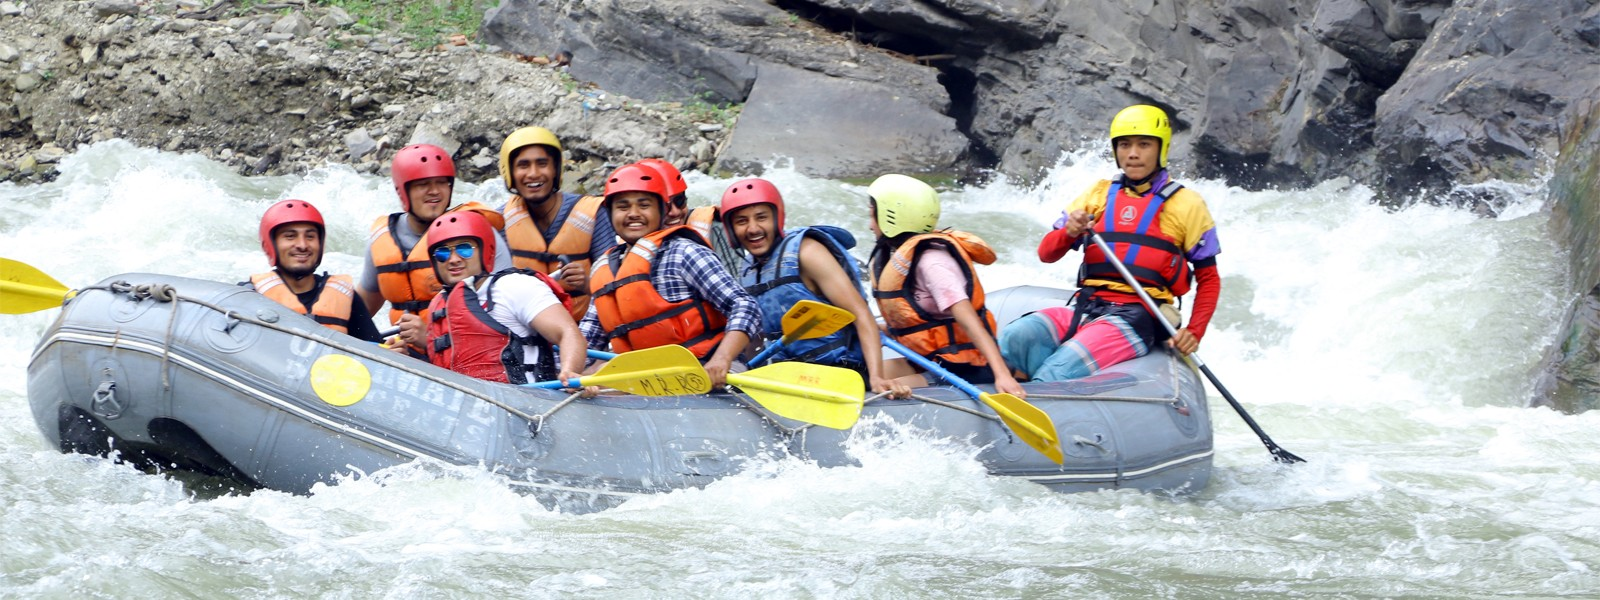 Sun Koshi River Adventure